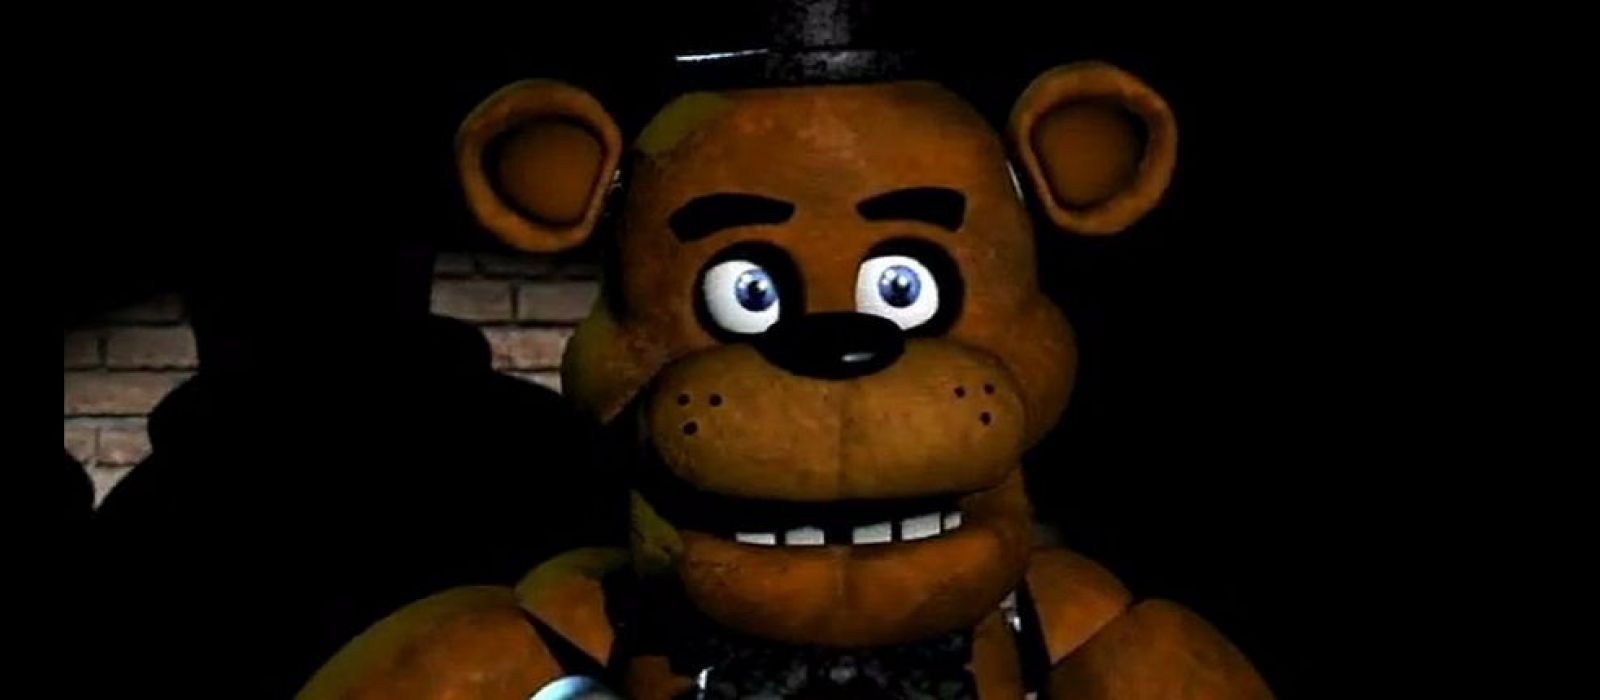 Фанат воссоздал Five Nights at Freddy's на движке Unreal Engine 4